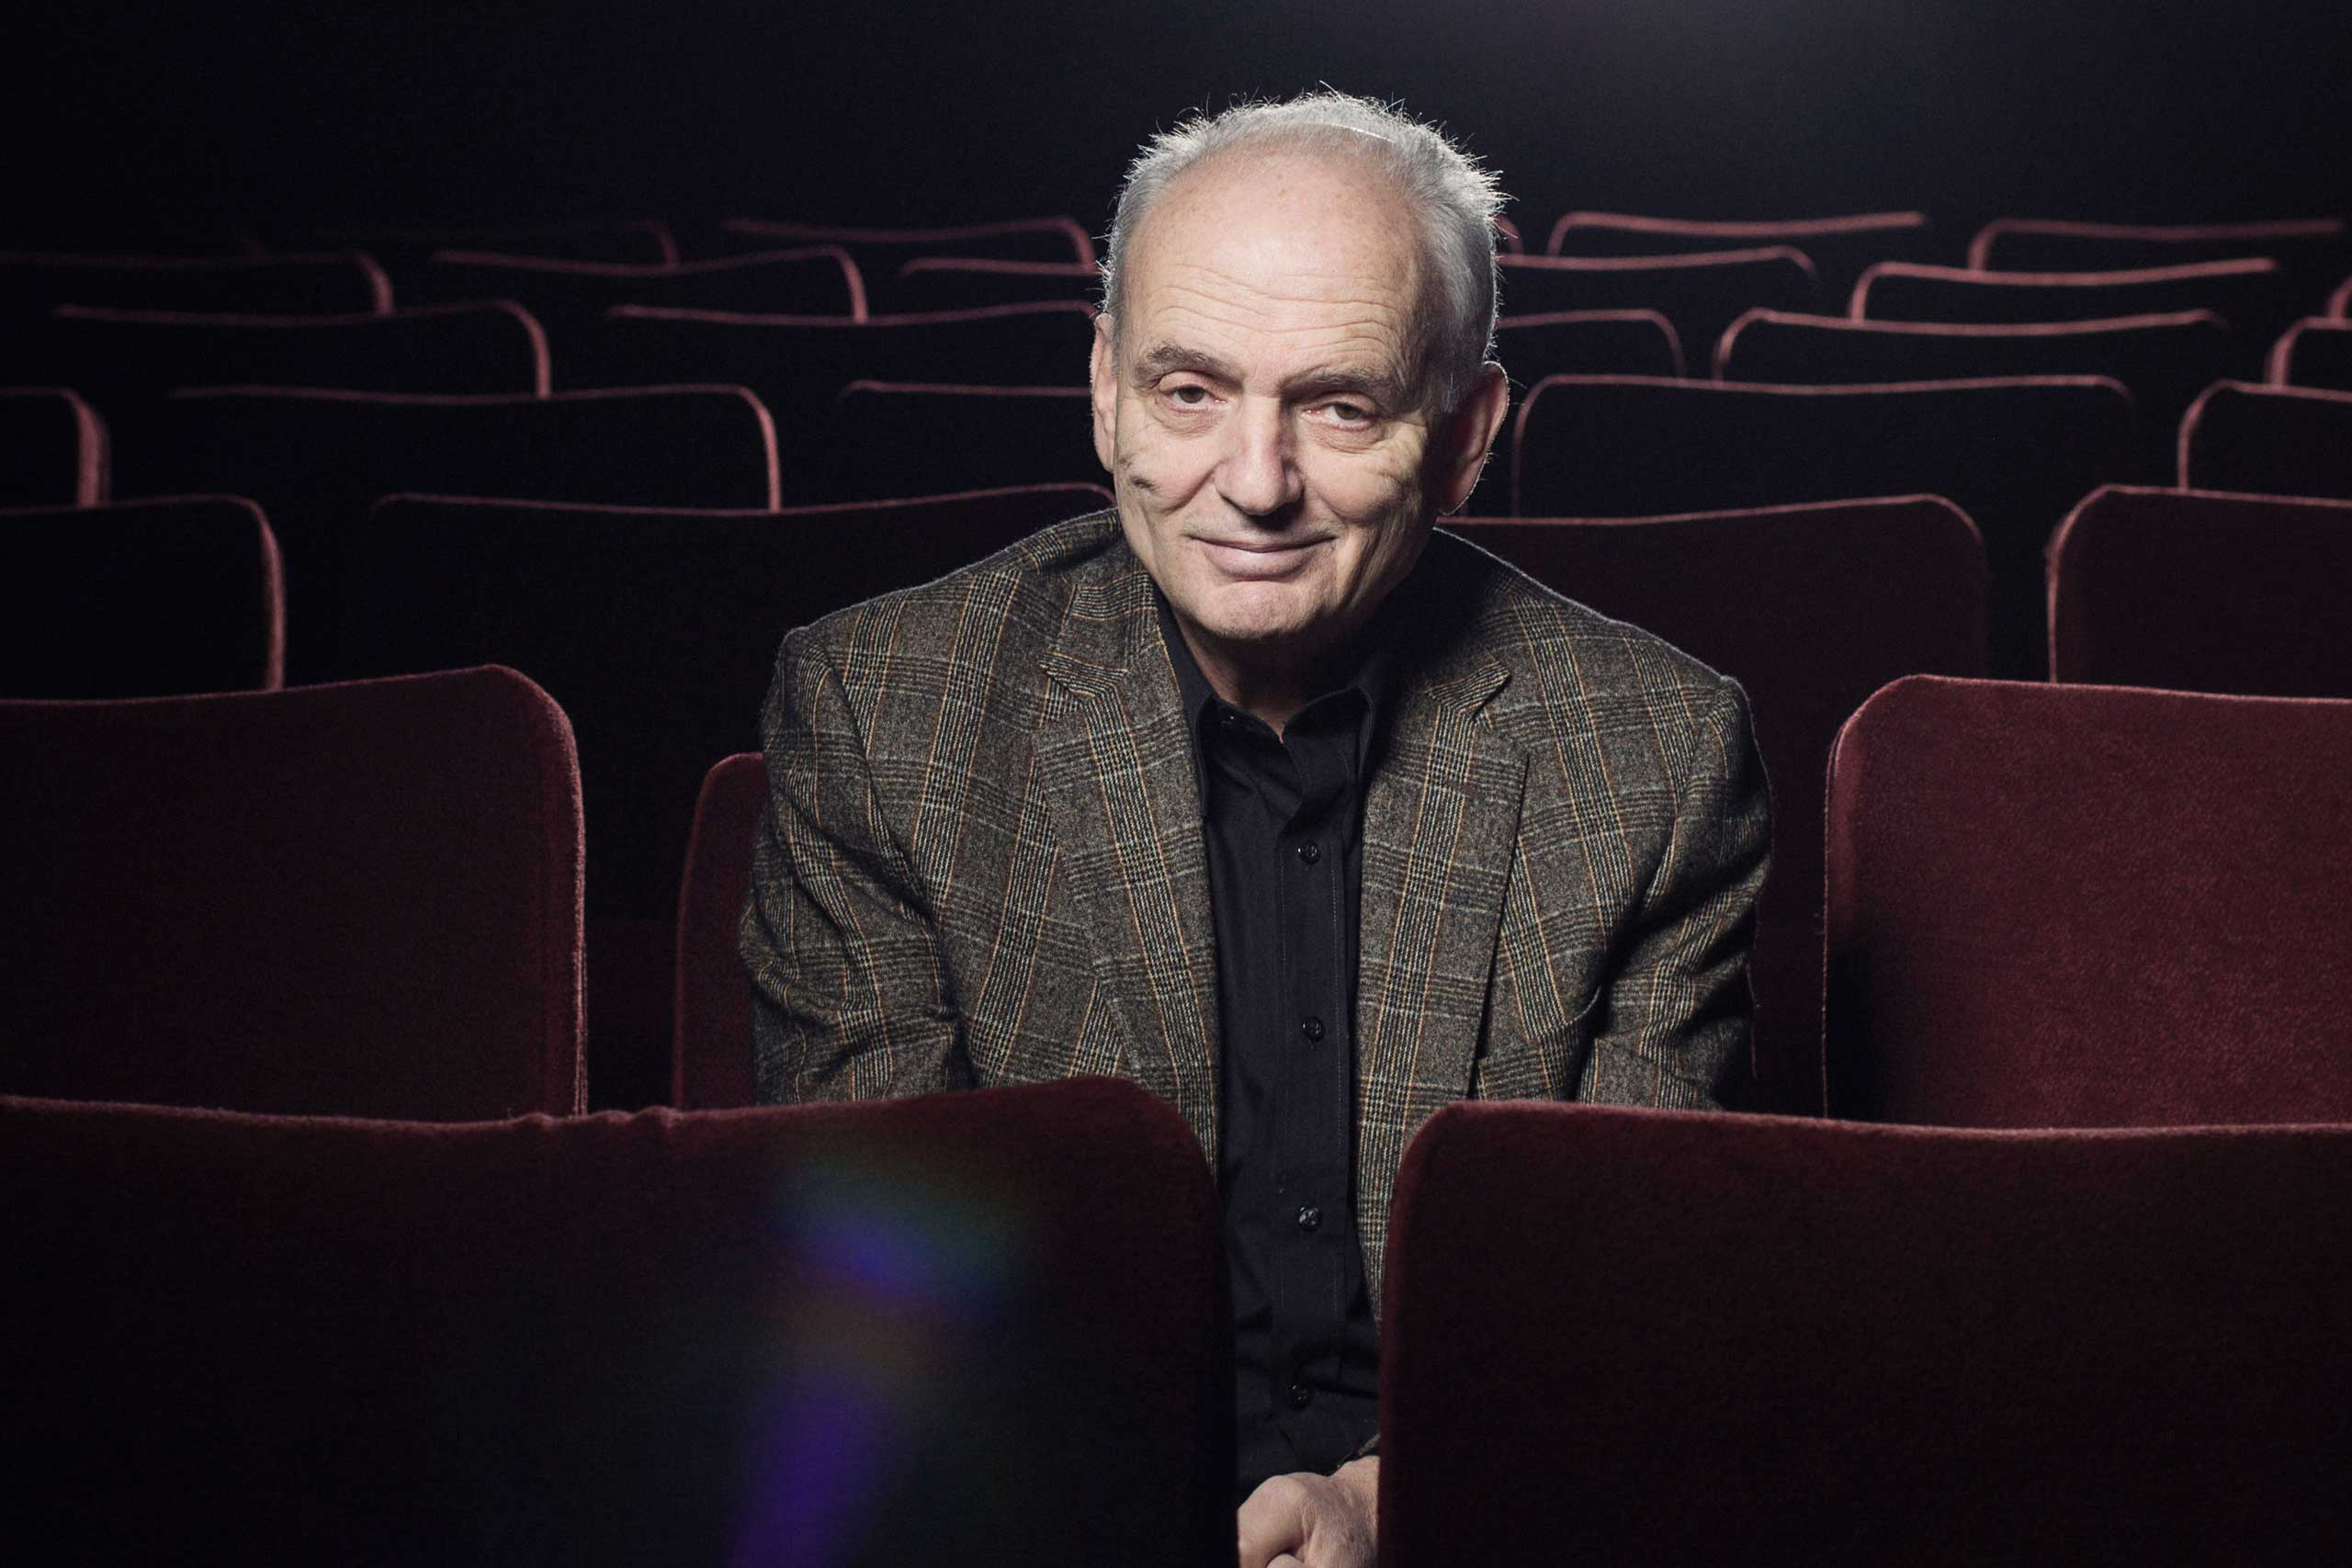 David Chase sitting in a theater